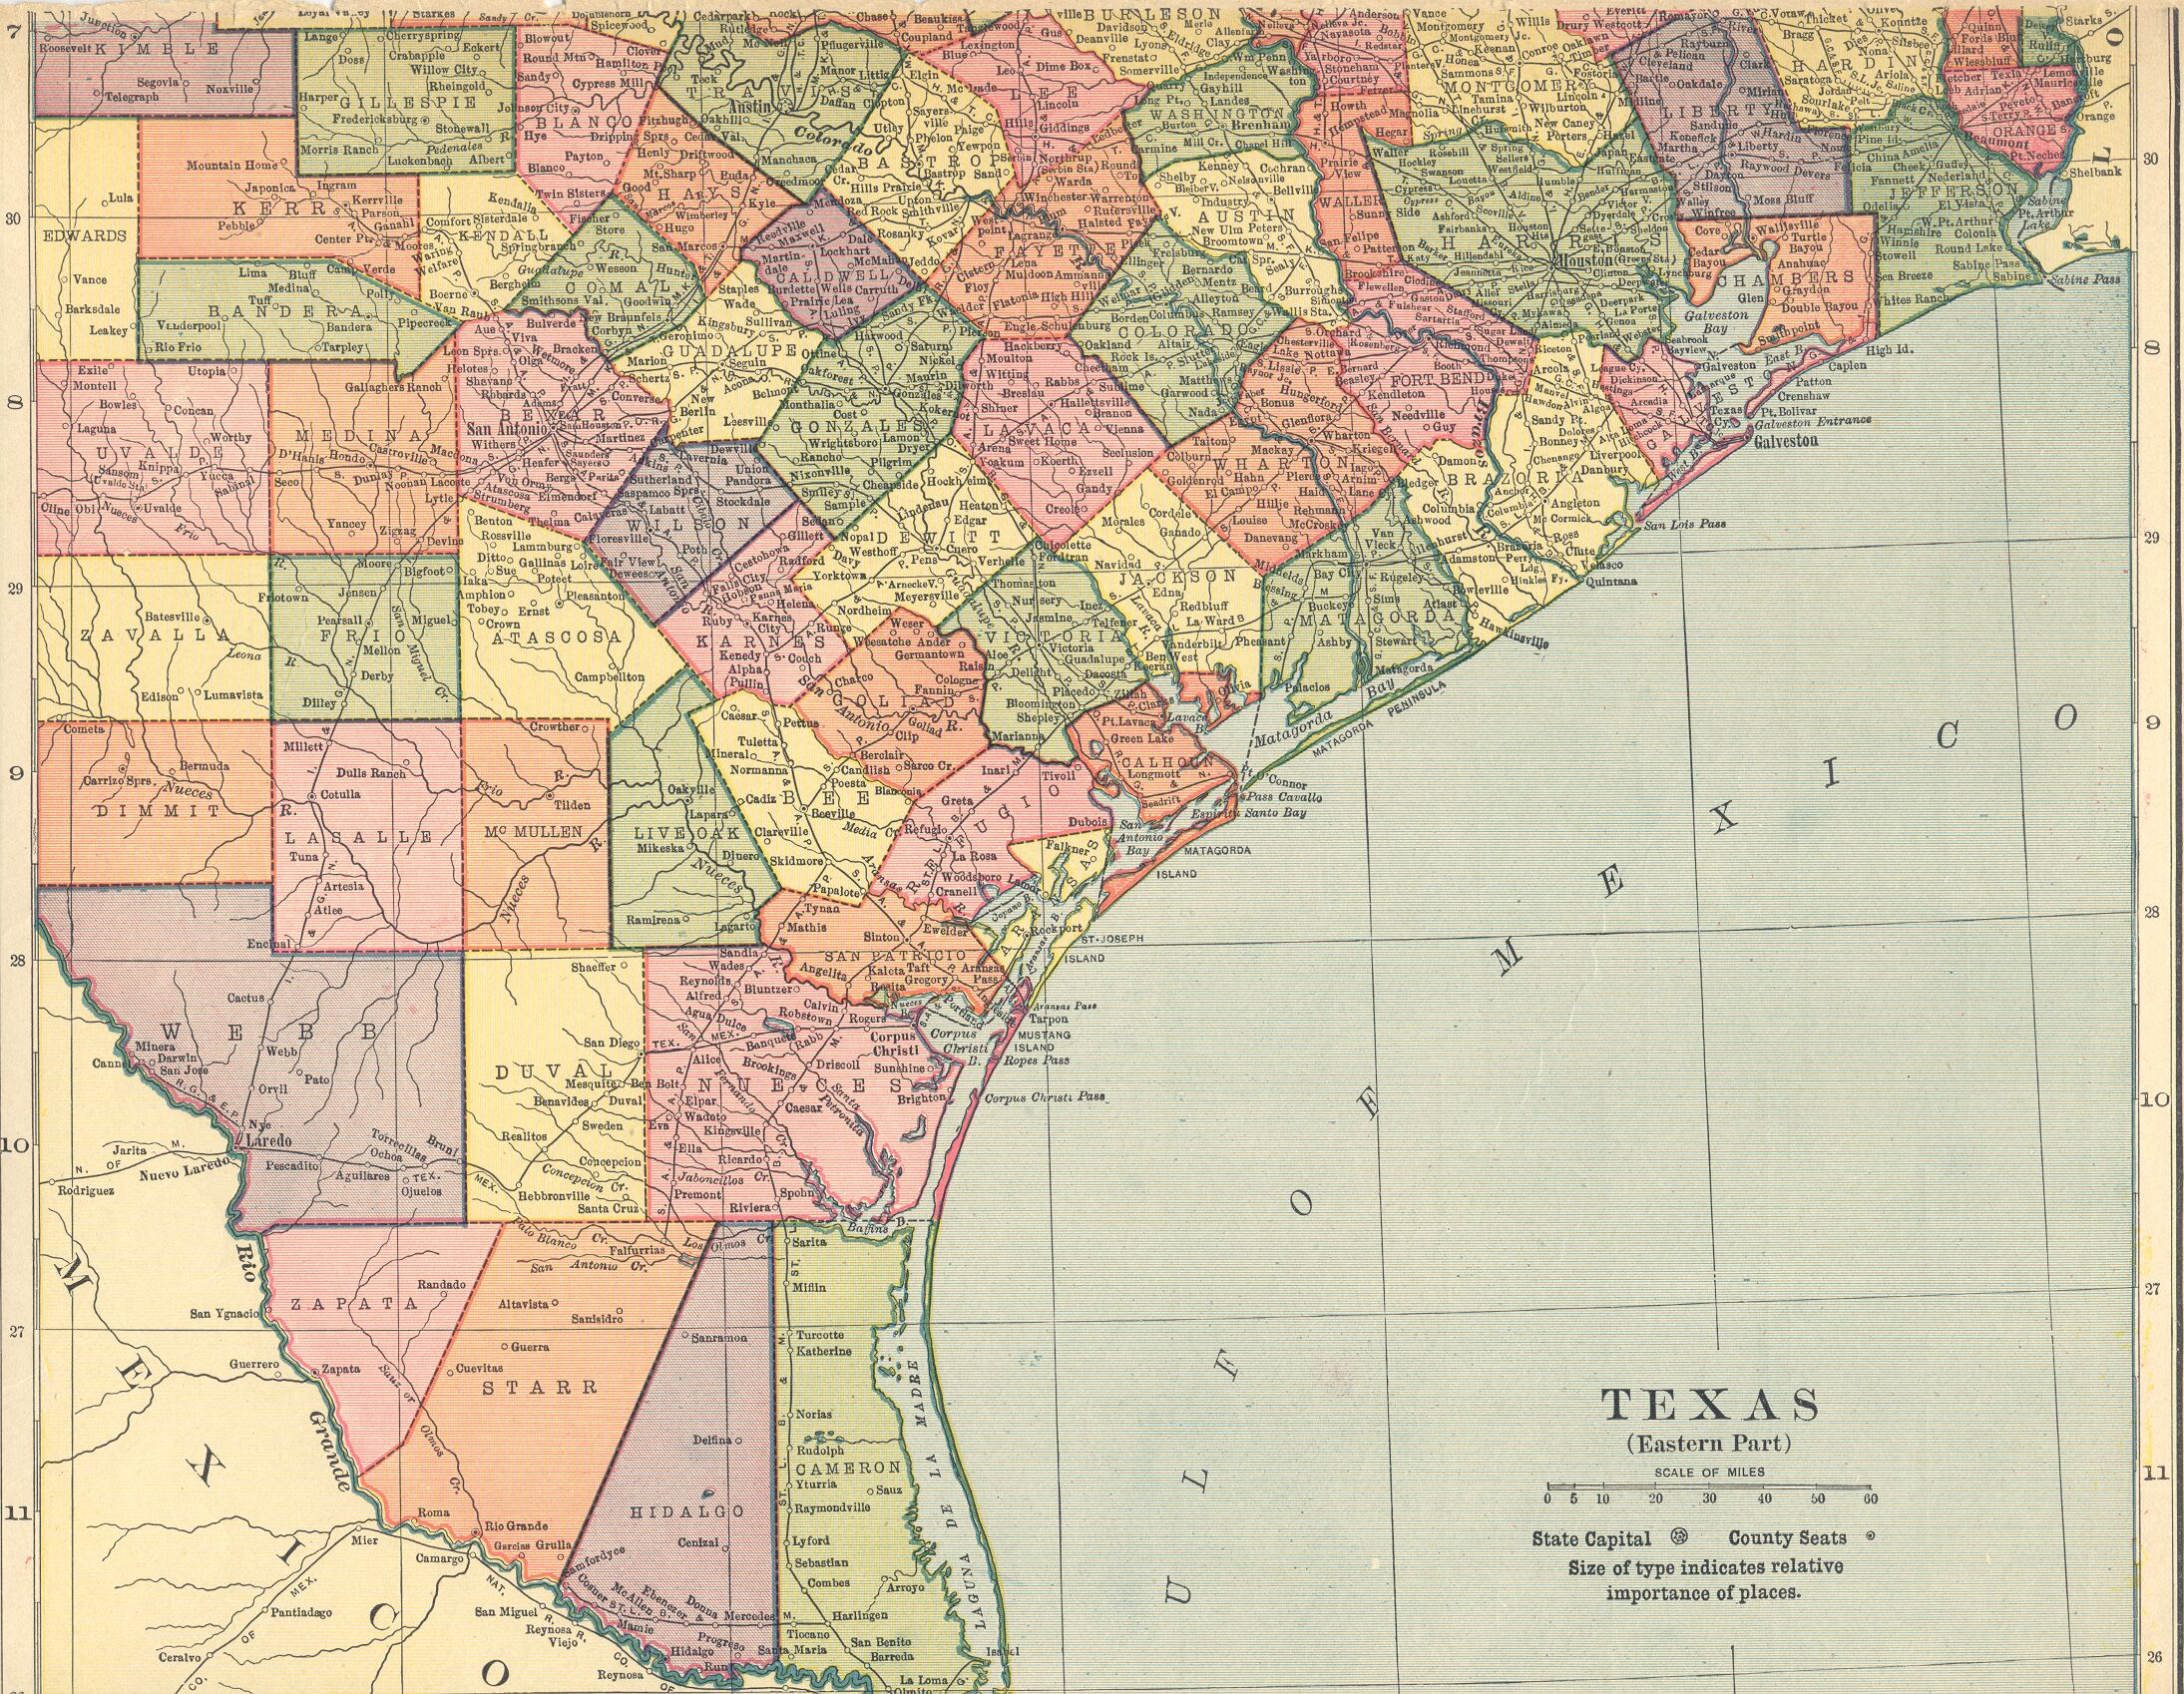 The USGenWeb Archives Digital Map Library Hammonds 1910 Atlas Texas